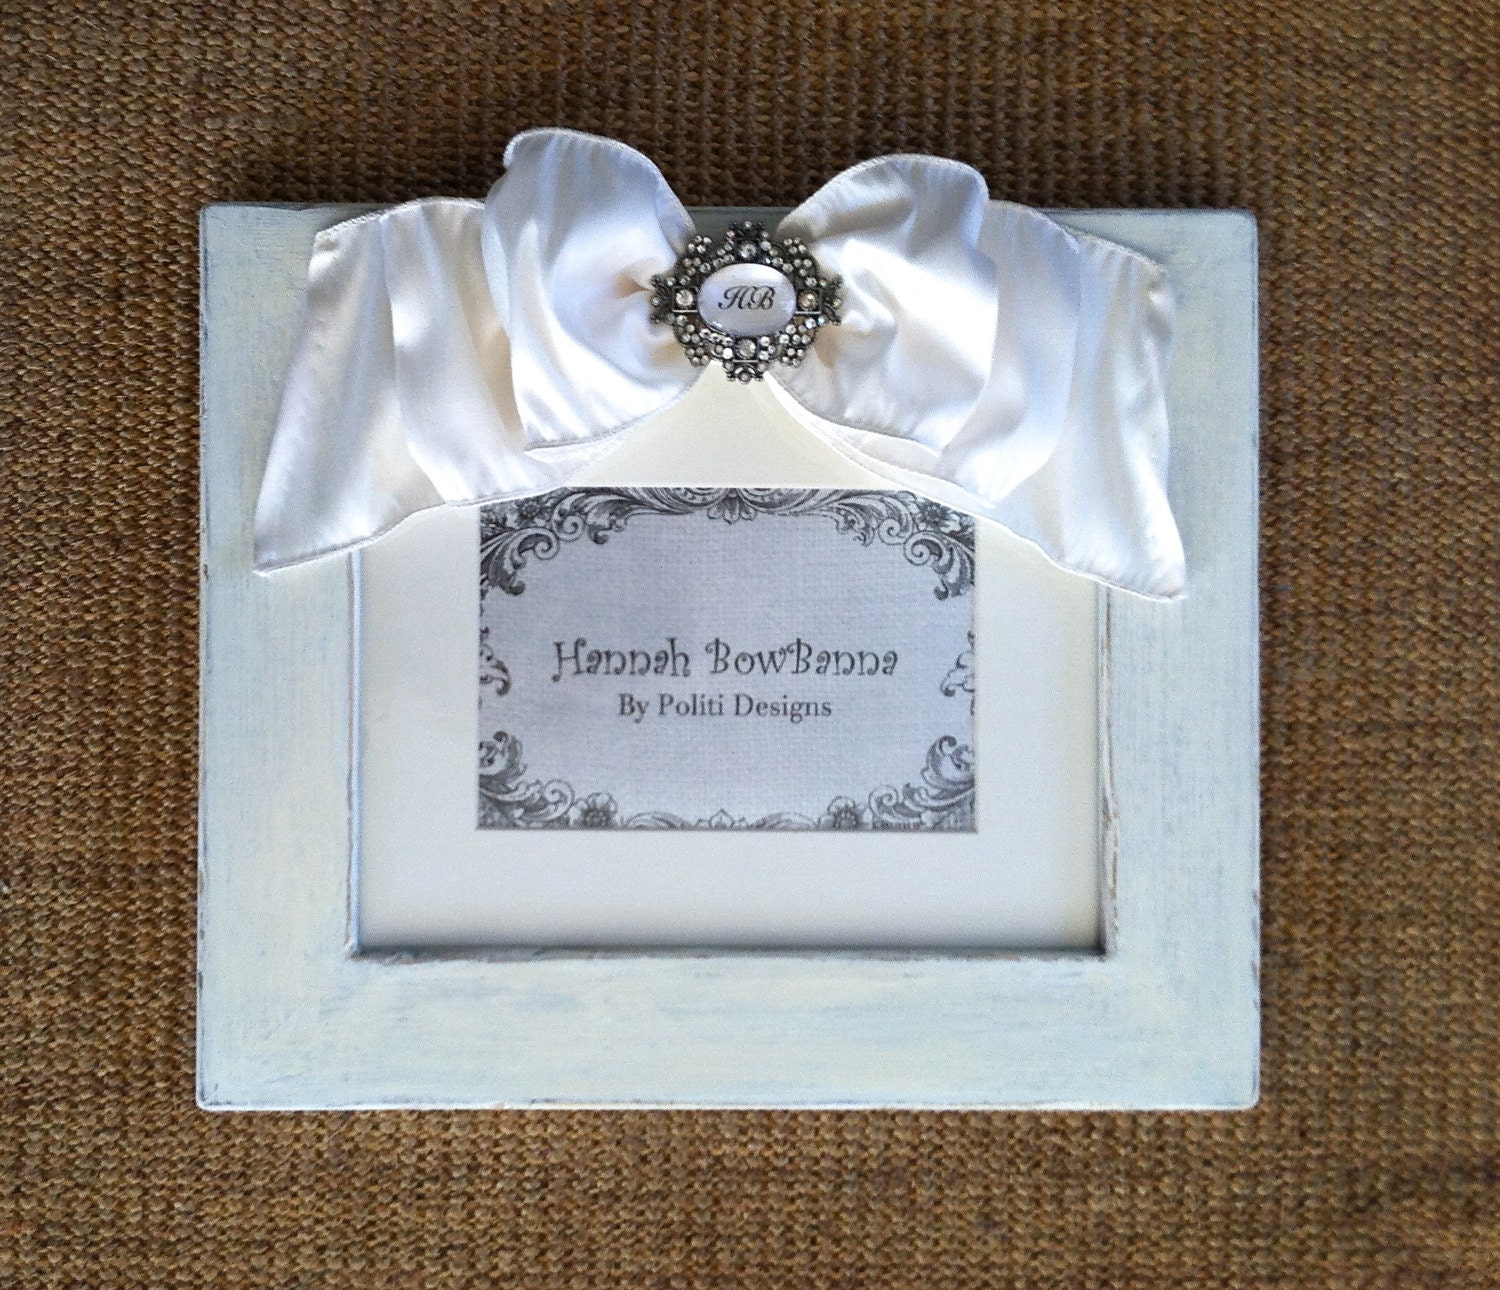 Personalized Wedding Picture Frames 8x10 : White Wedding 8x10 Frame Personalized Rustic Bow by HannahBowBanna